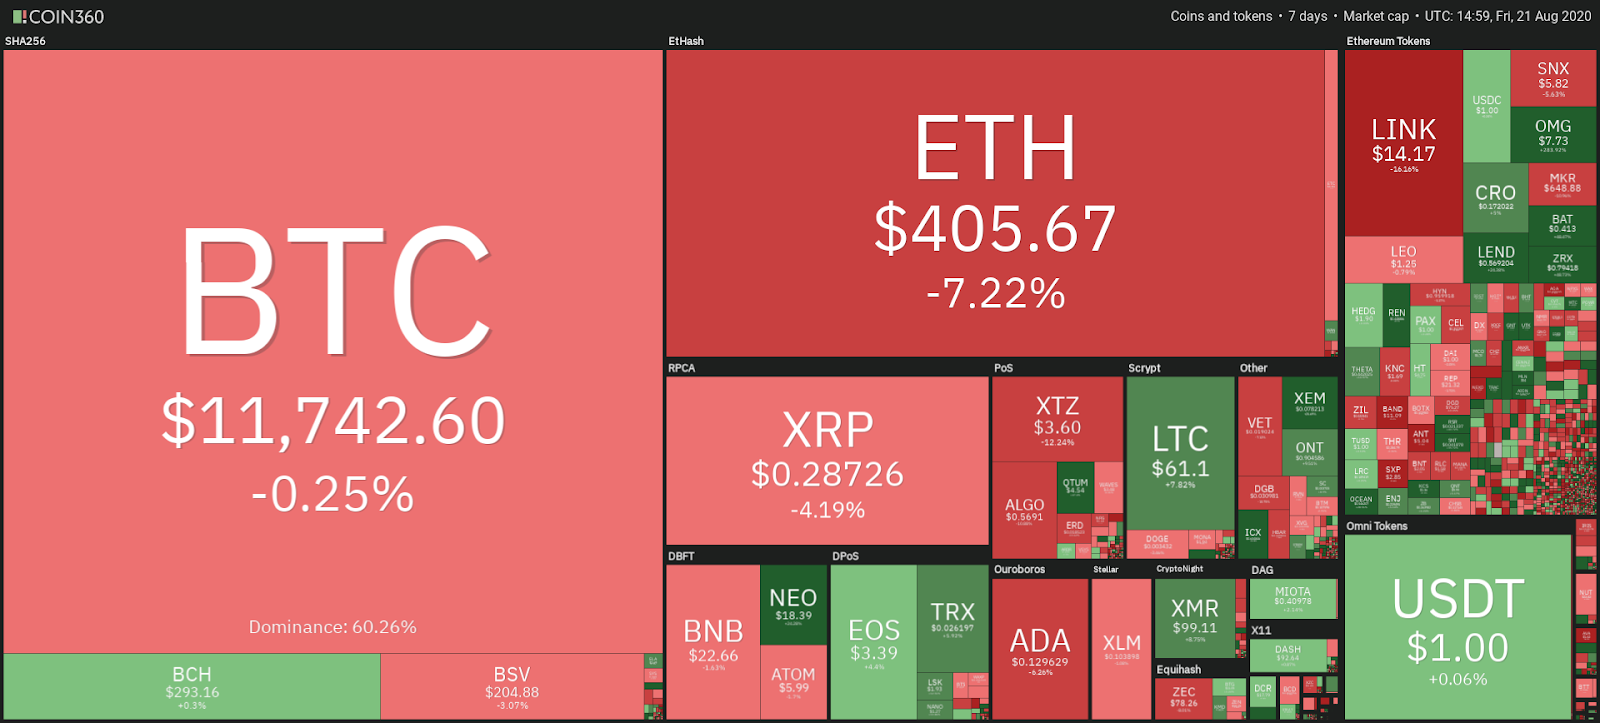 Cryptocurrency market weekly performance. Source: Coin360